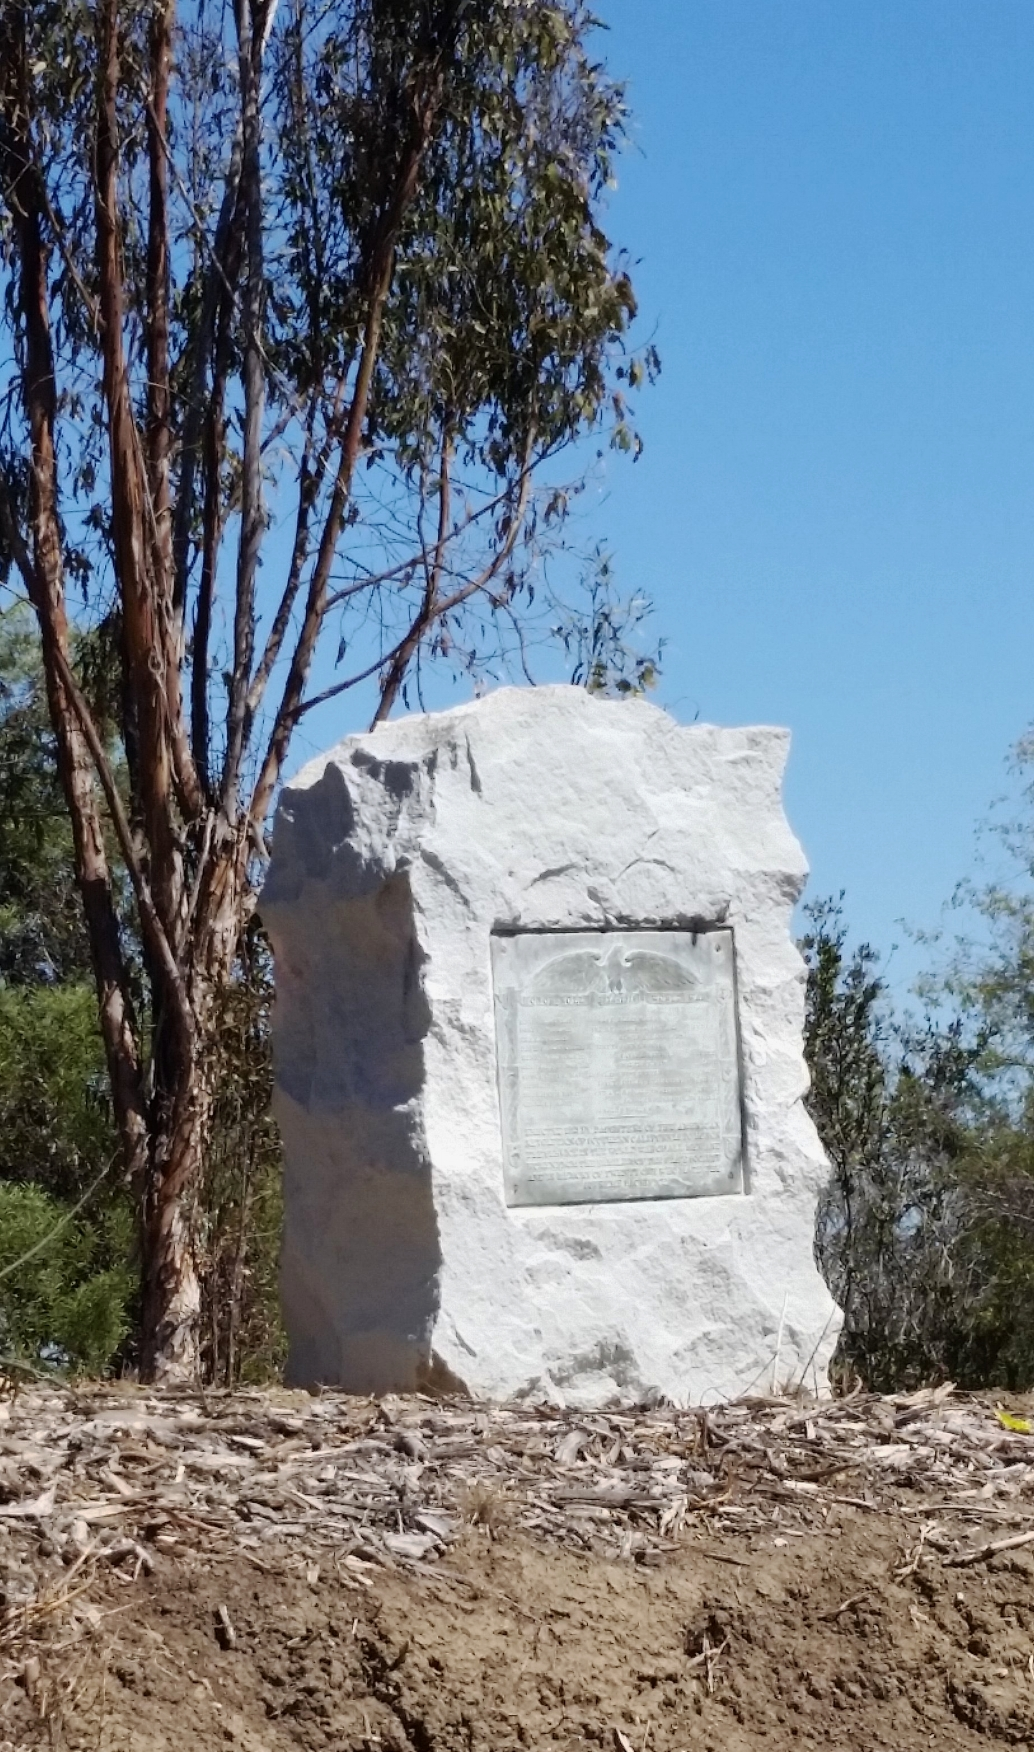 The WWI memorial at Elysian Park in Los Angeles needs a facelift